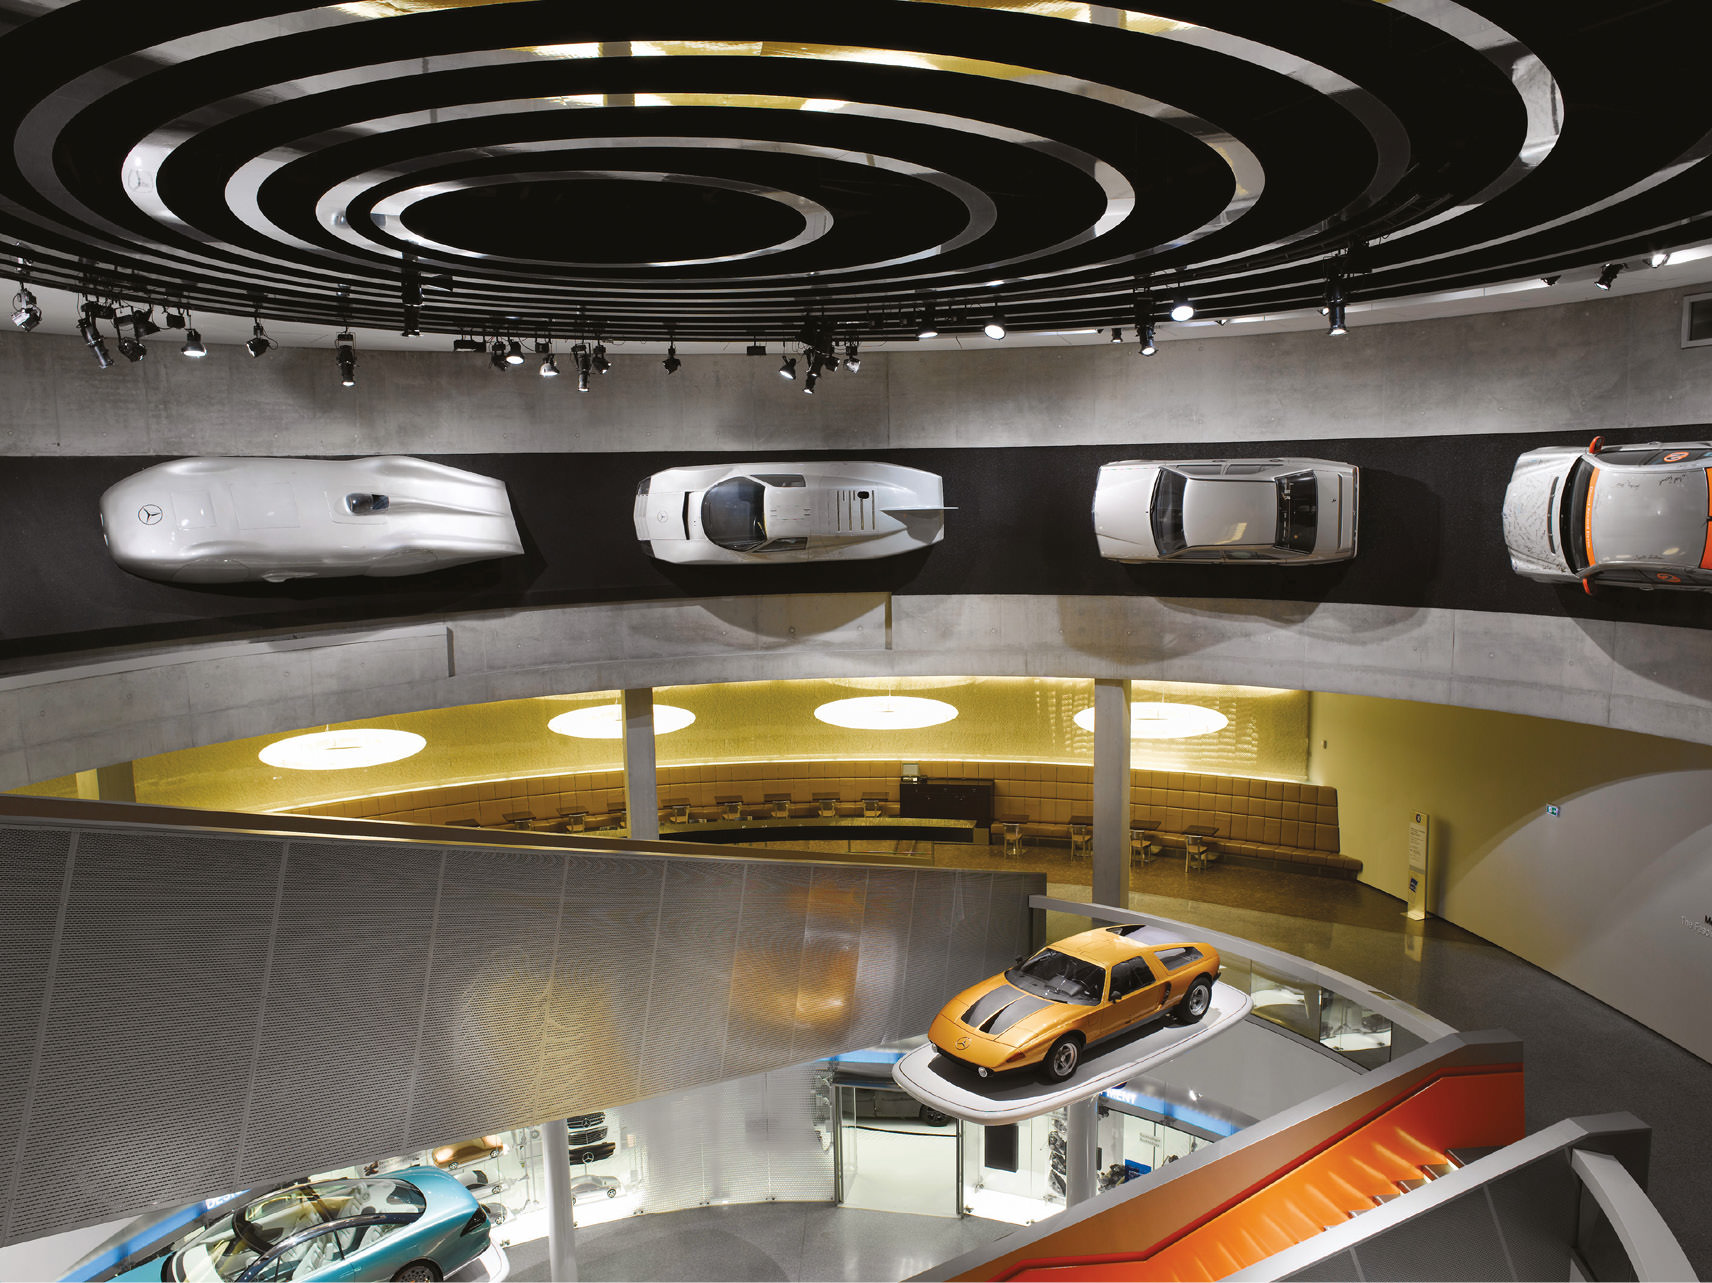 The Mercedes-Benz museum is home to some stunning design exhibits